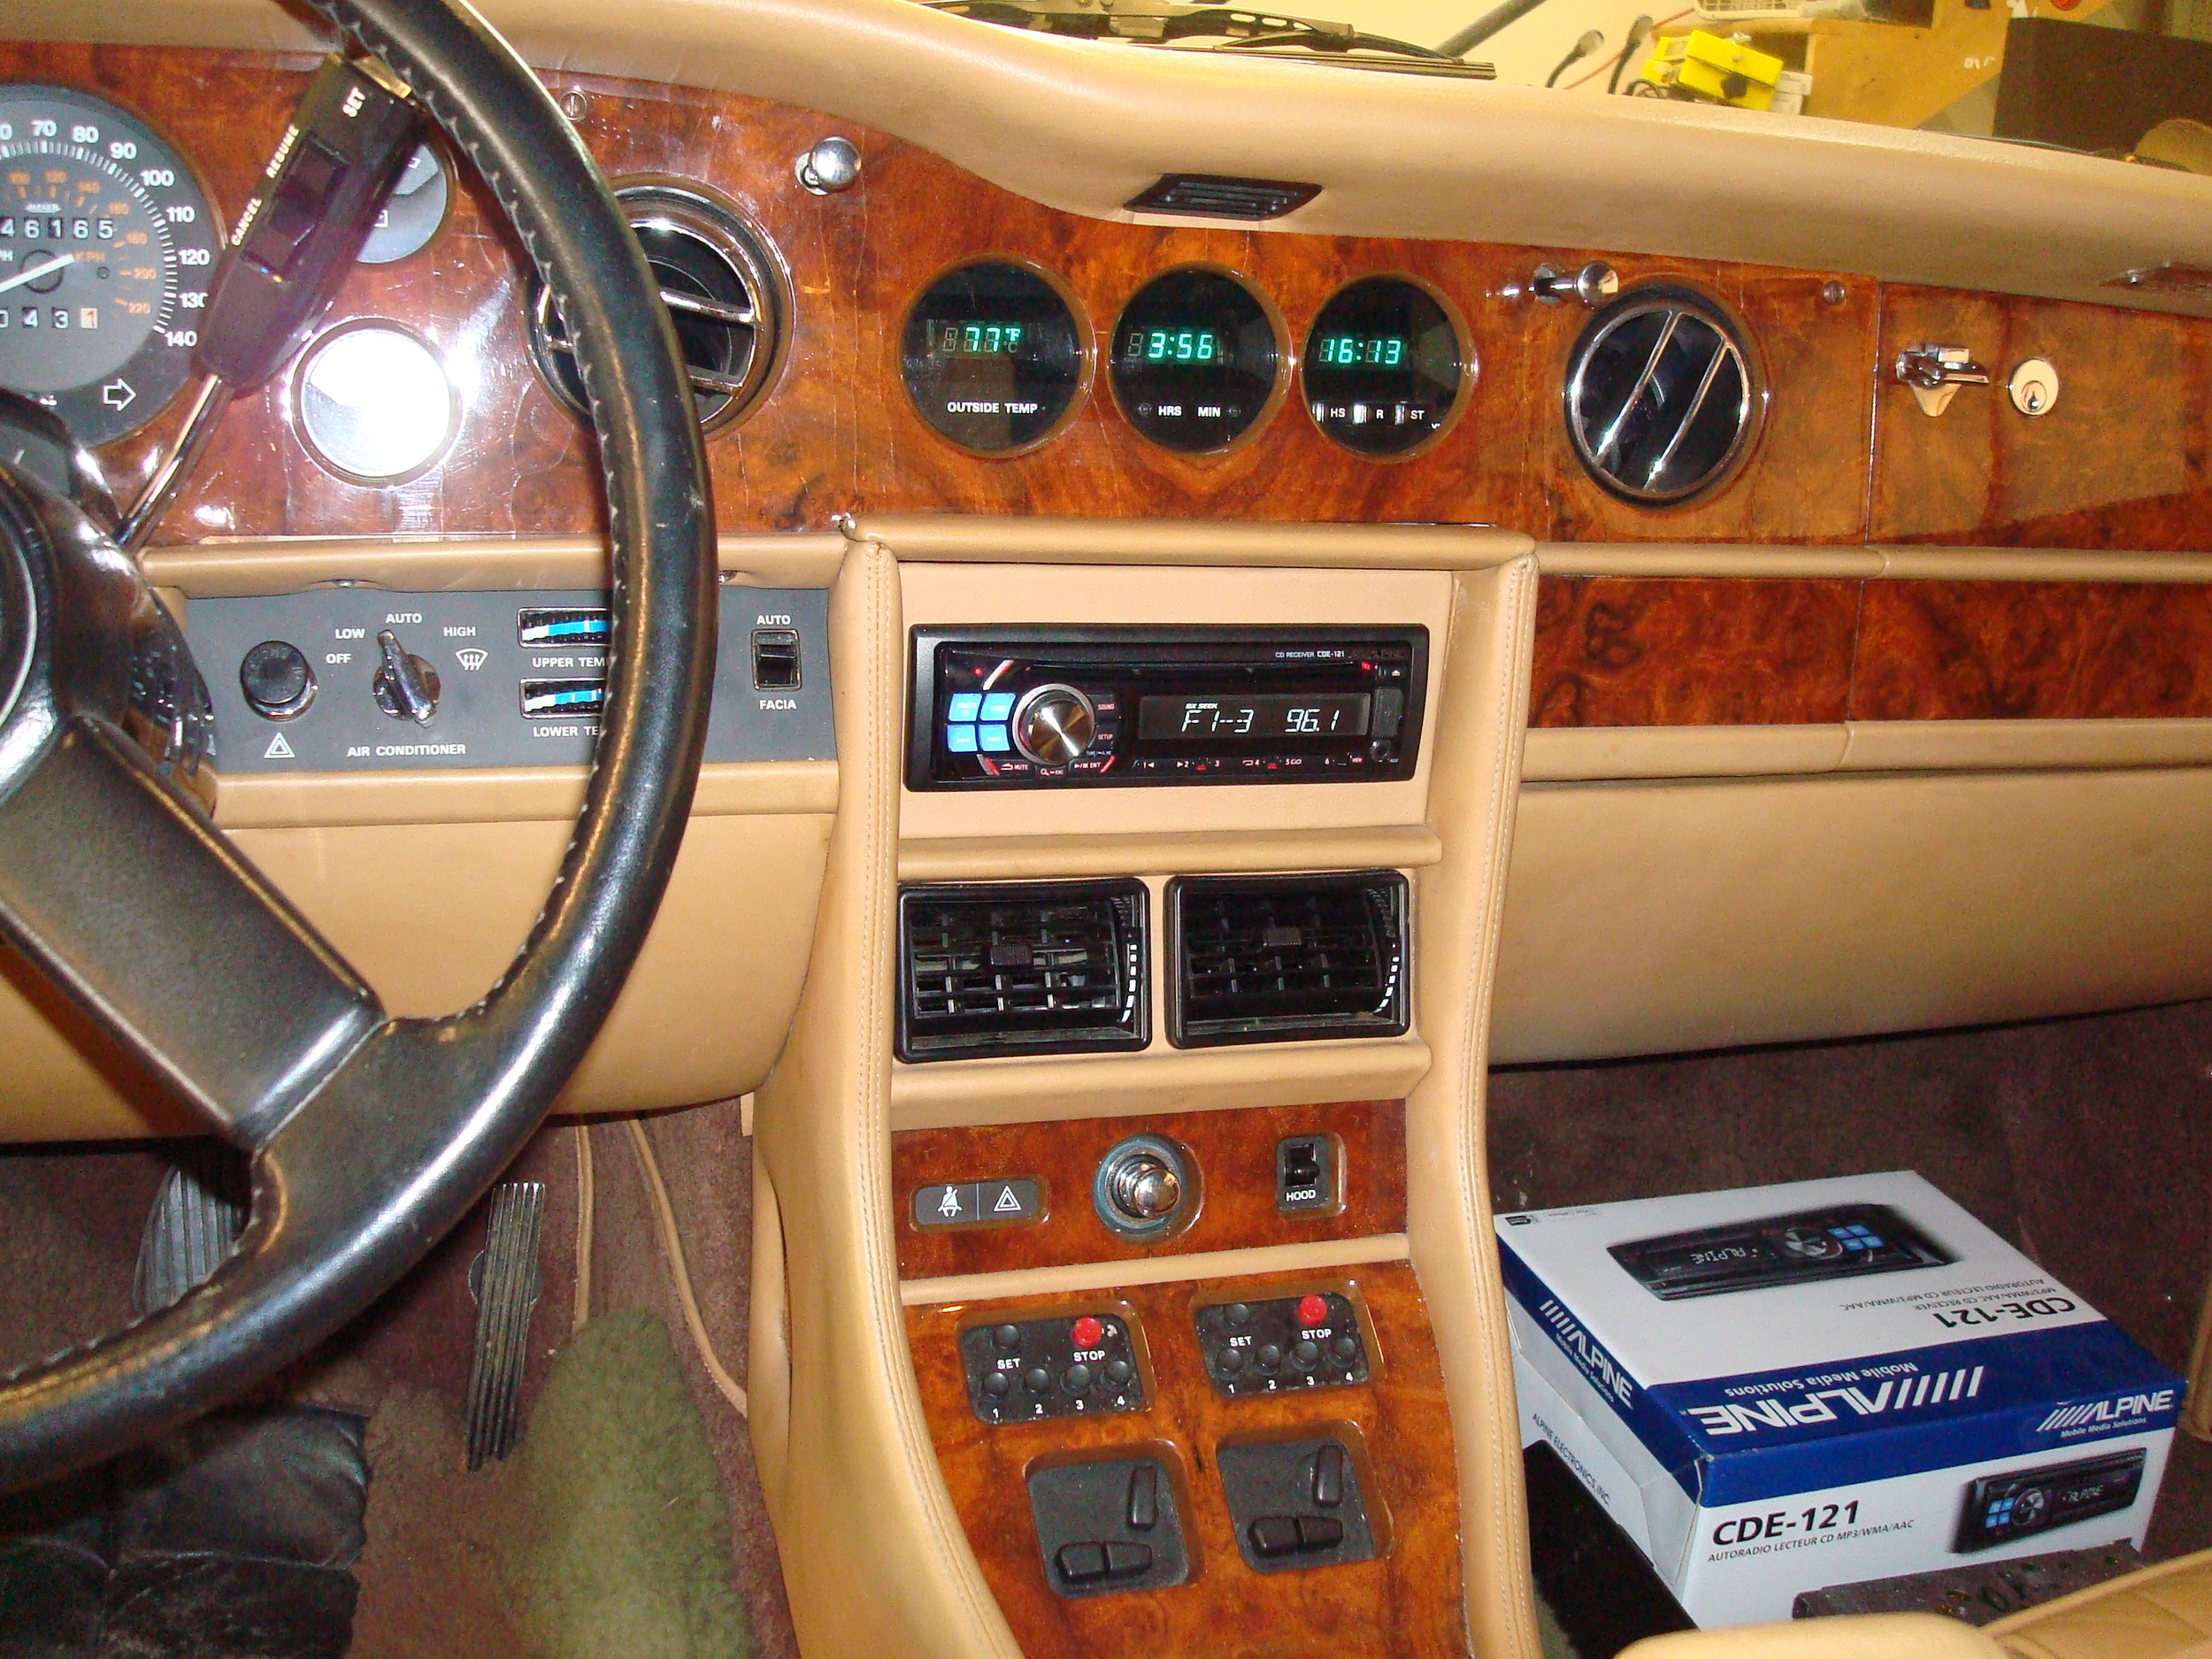 1986 Rolls Royce - Alpine Radio Installation with Leather Wrapped Faceplate